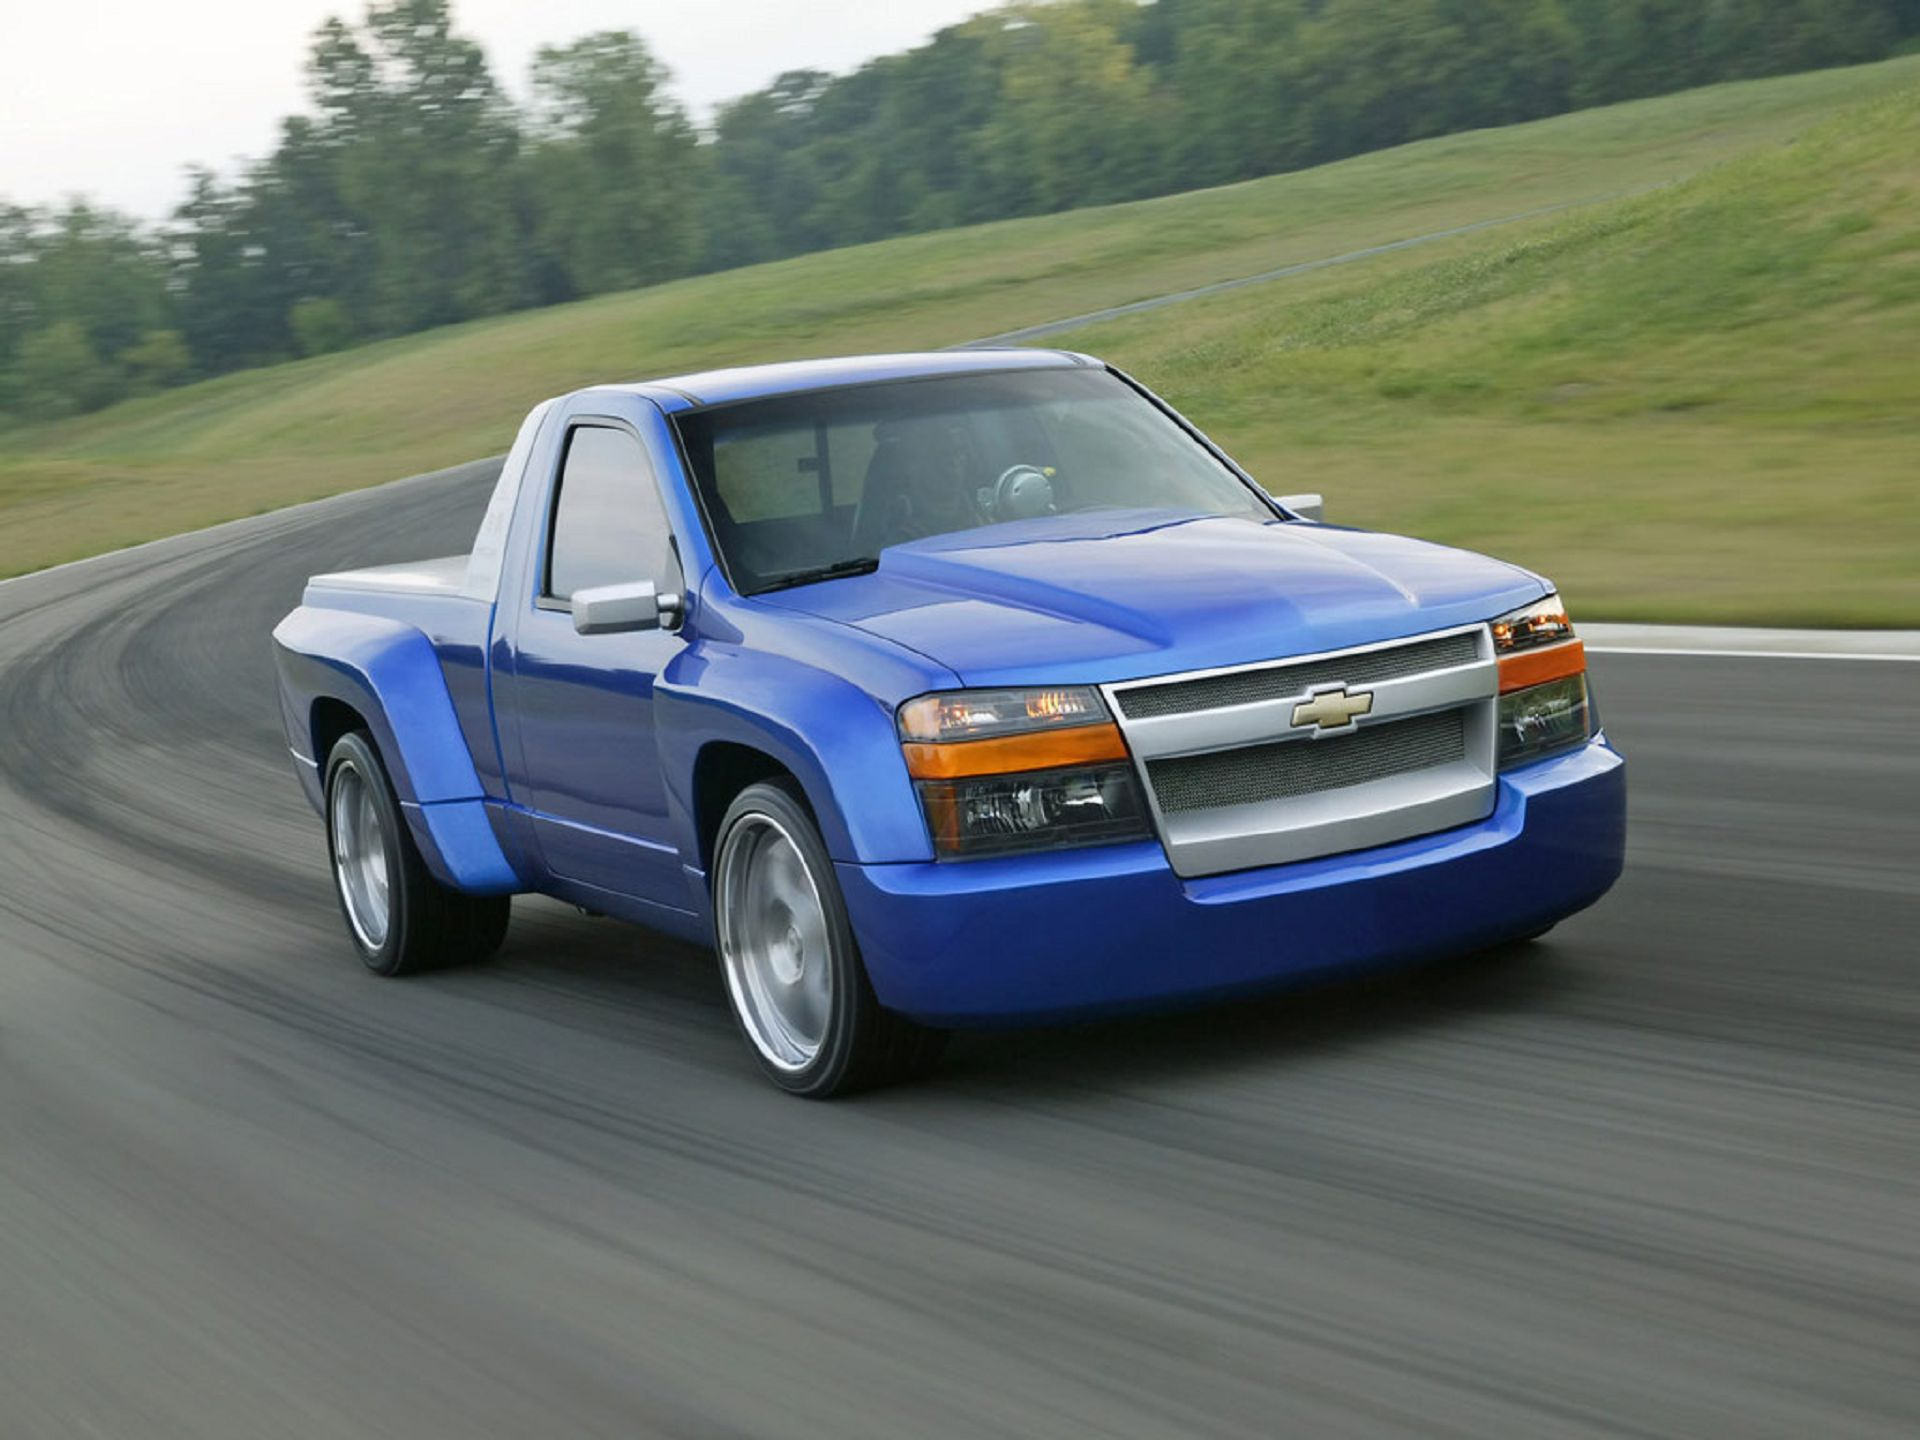 CHEVROLET COLORADO blue